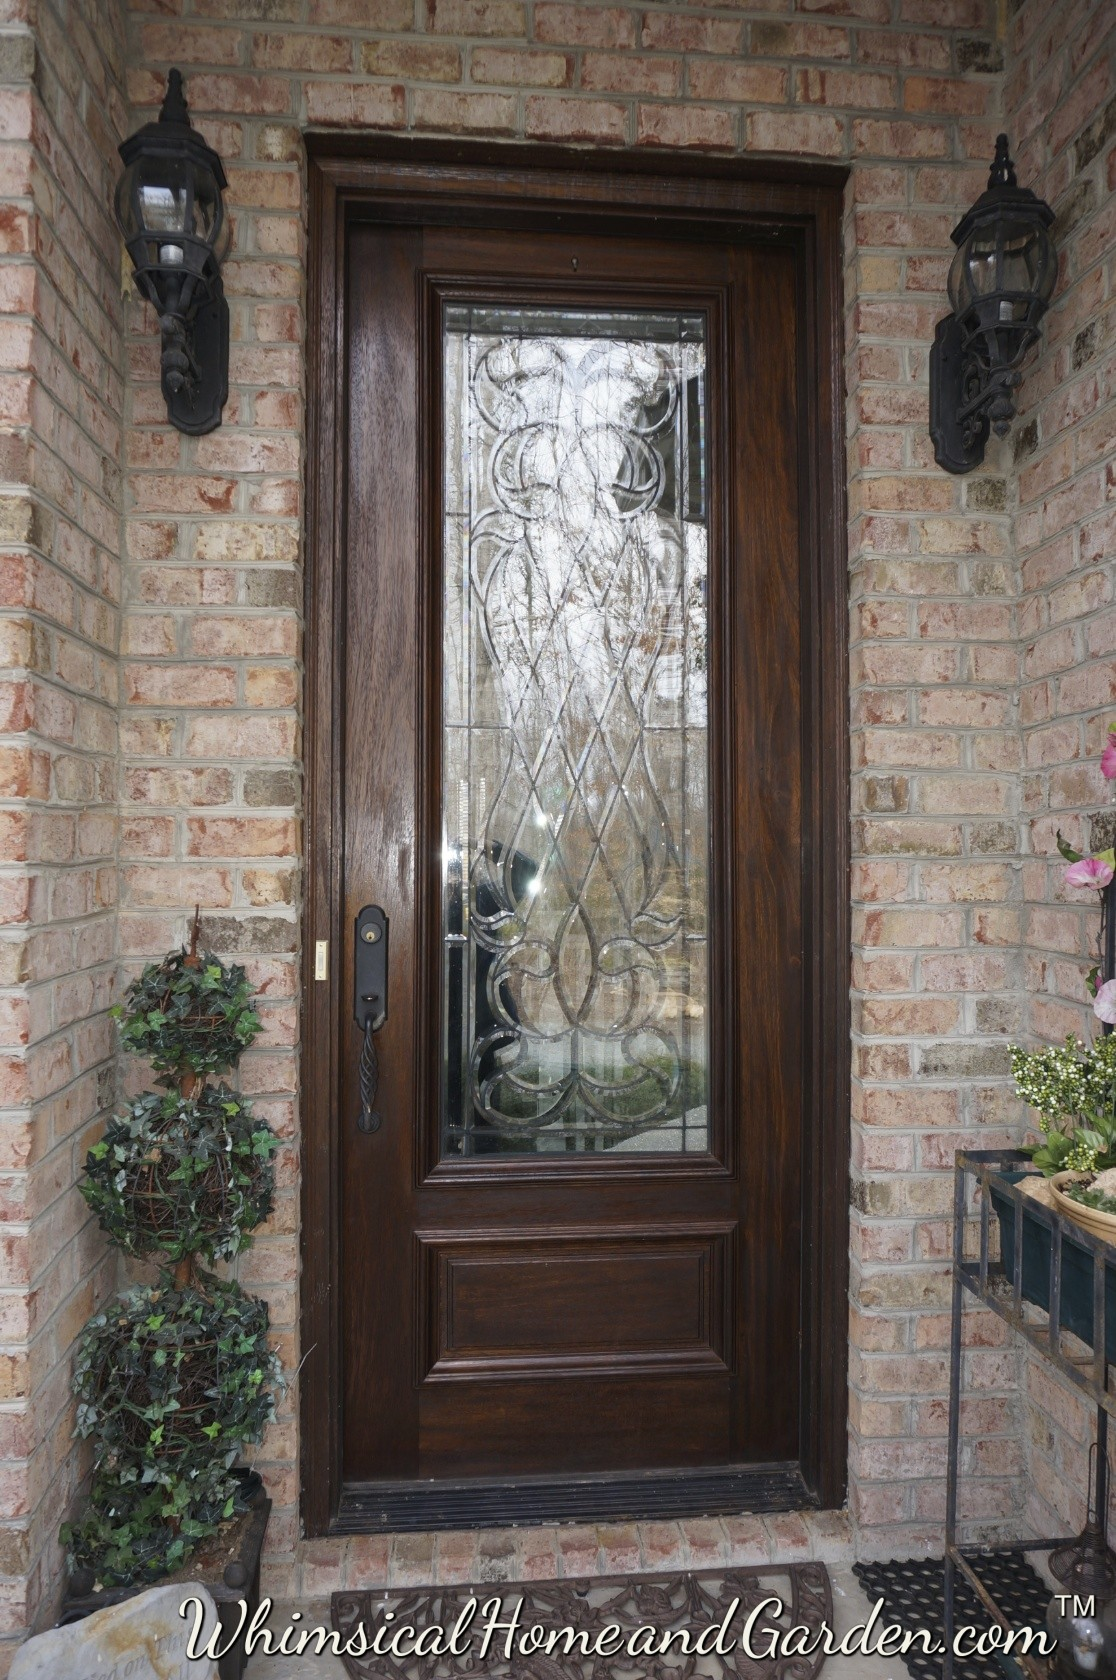 1000 images about front door ideas on pinterest the for Front window ideas